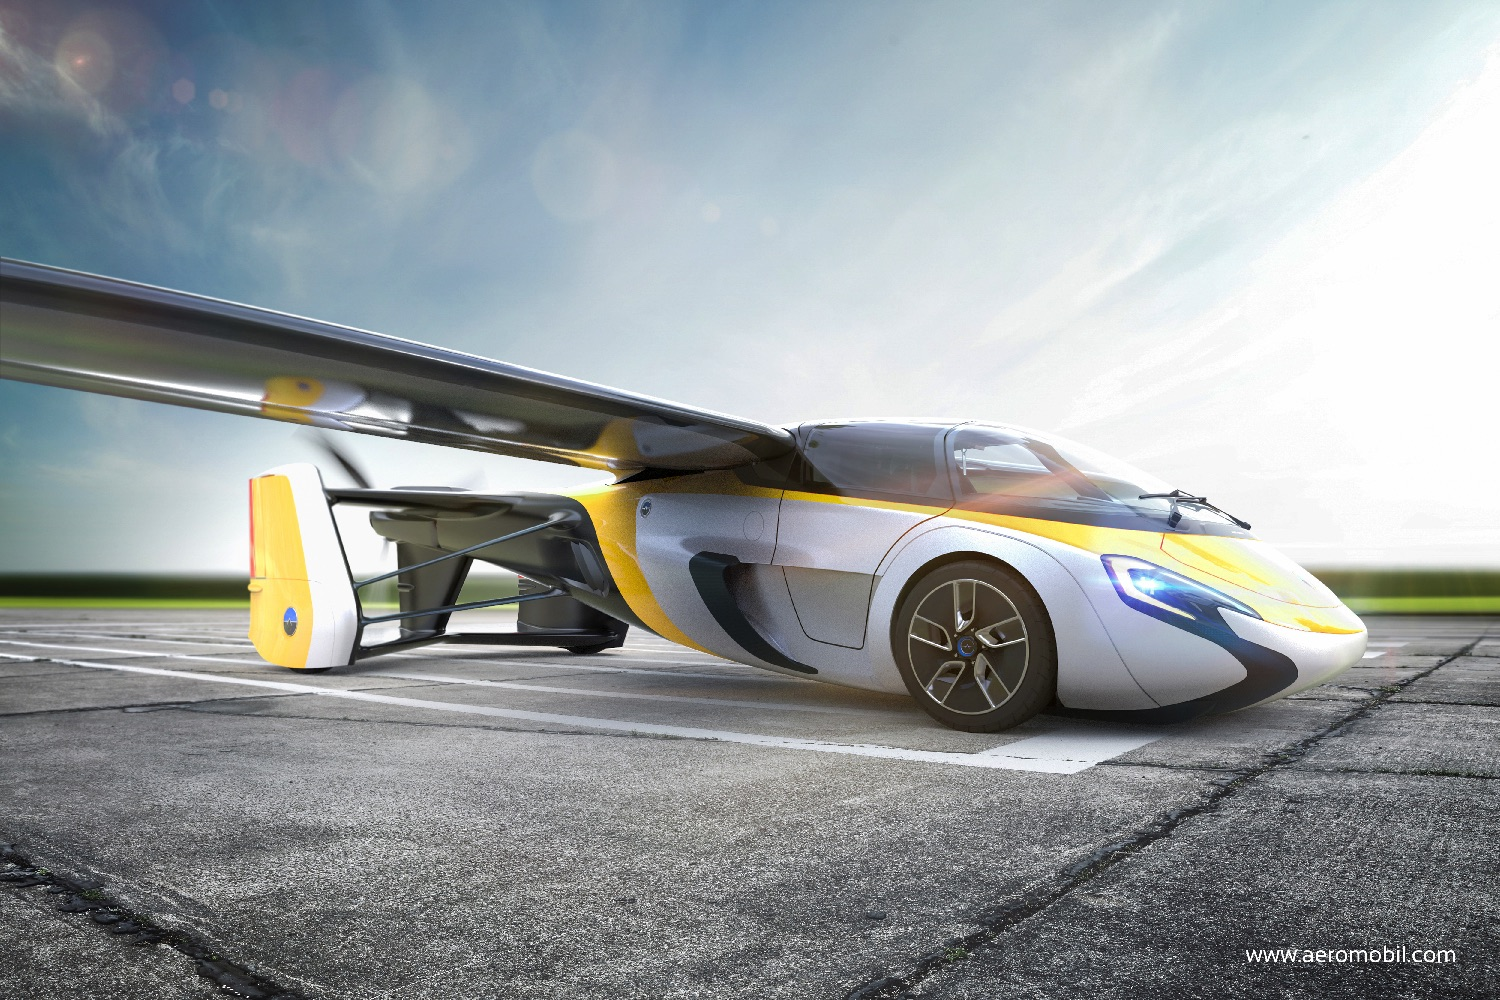 The World's First Production-Ready Flying Car Is Finally Here